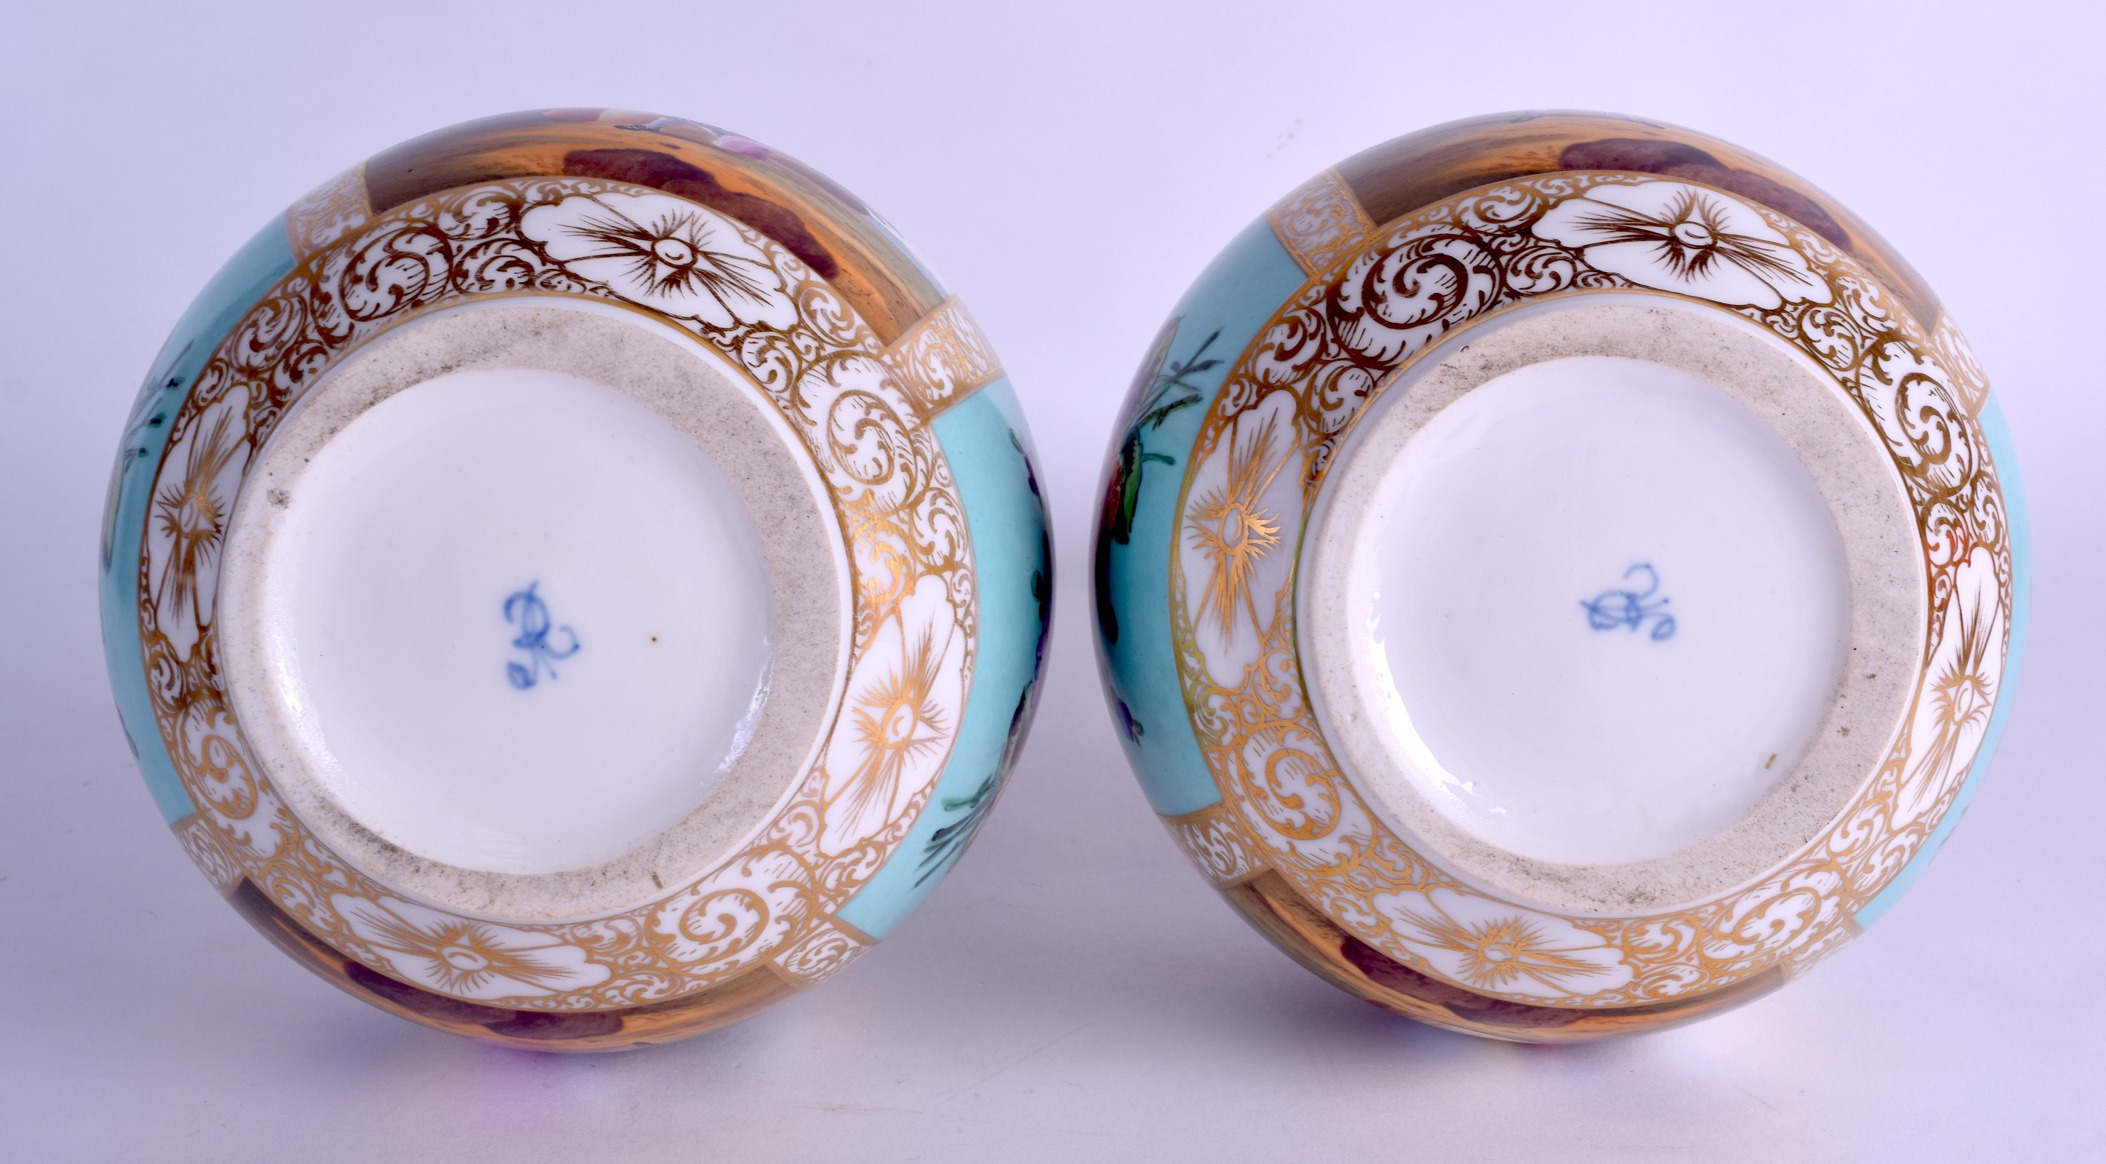 Lot 51 - A LARGE PAIR OF 19TH CENTURY GERMAN AUGUSTUS REX PORCELAIN VASES painted with lovers within